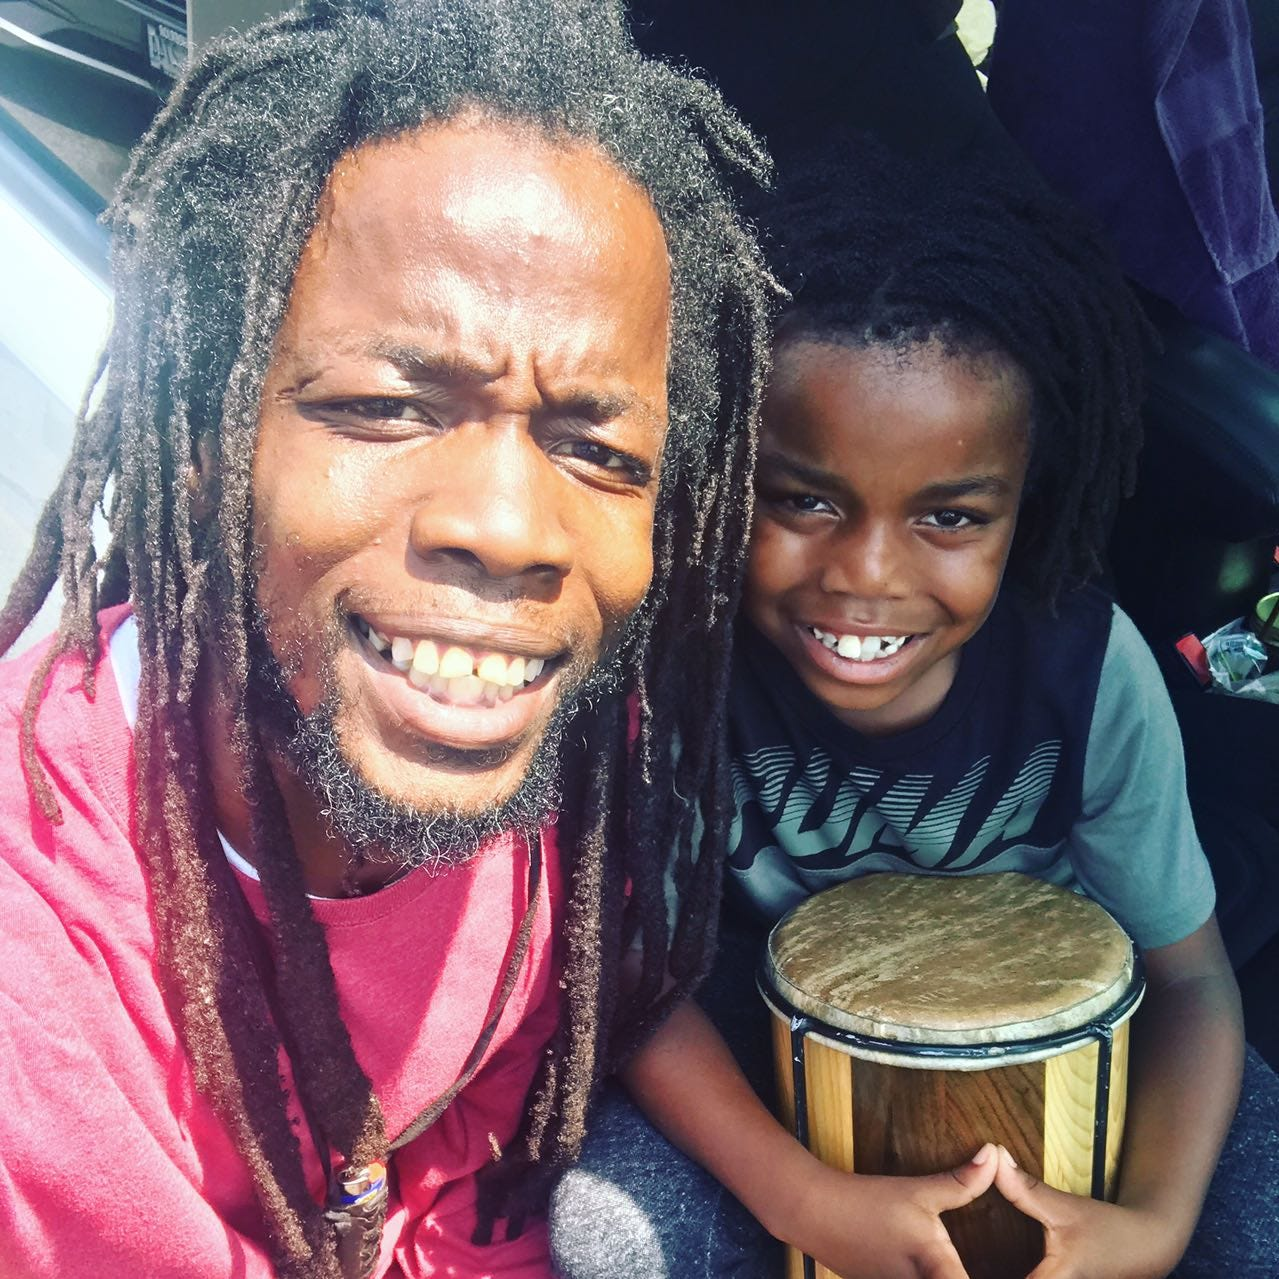 Jamaican-born musician sentenced to 8 years in prison for marijuana he legally obtained